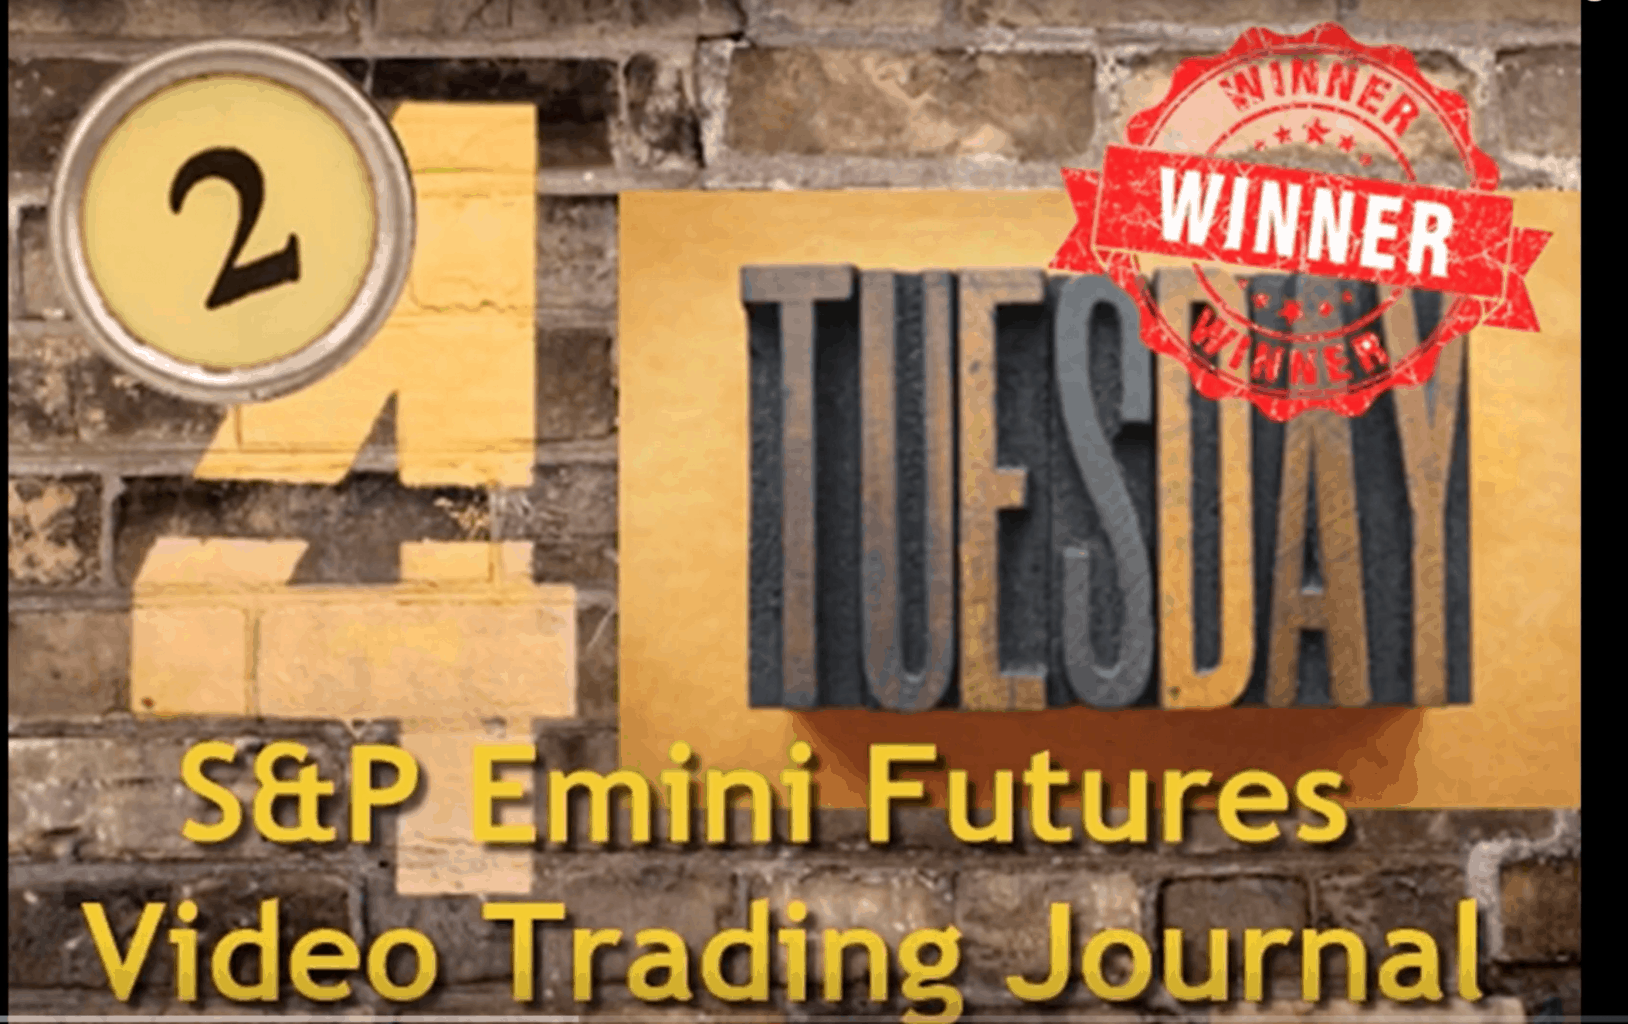 Day Trading Video Journal for ES Emini Futures